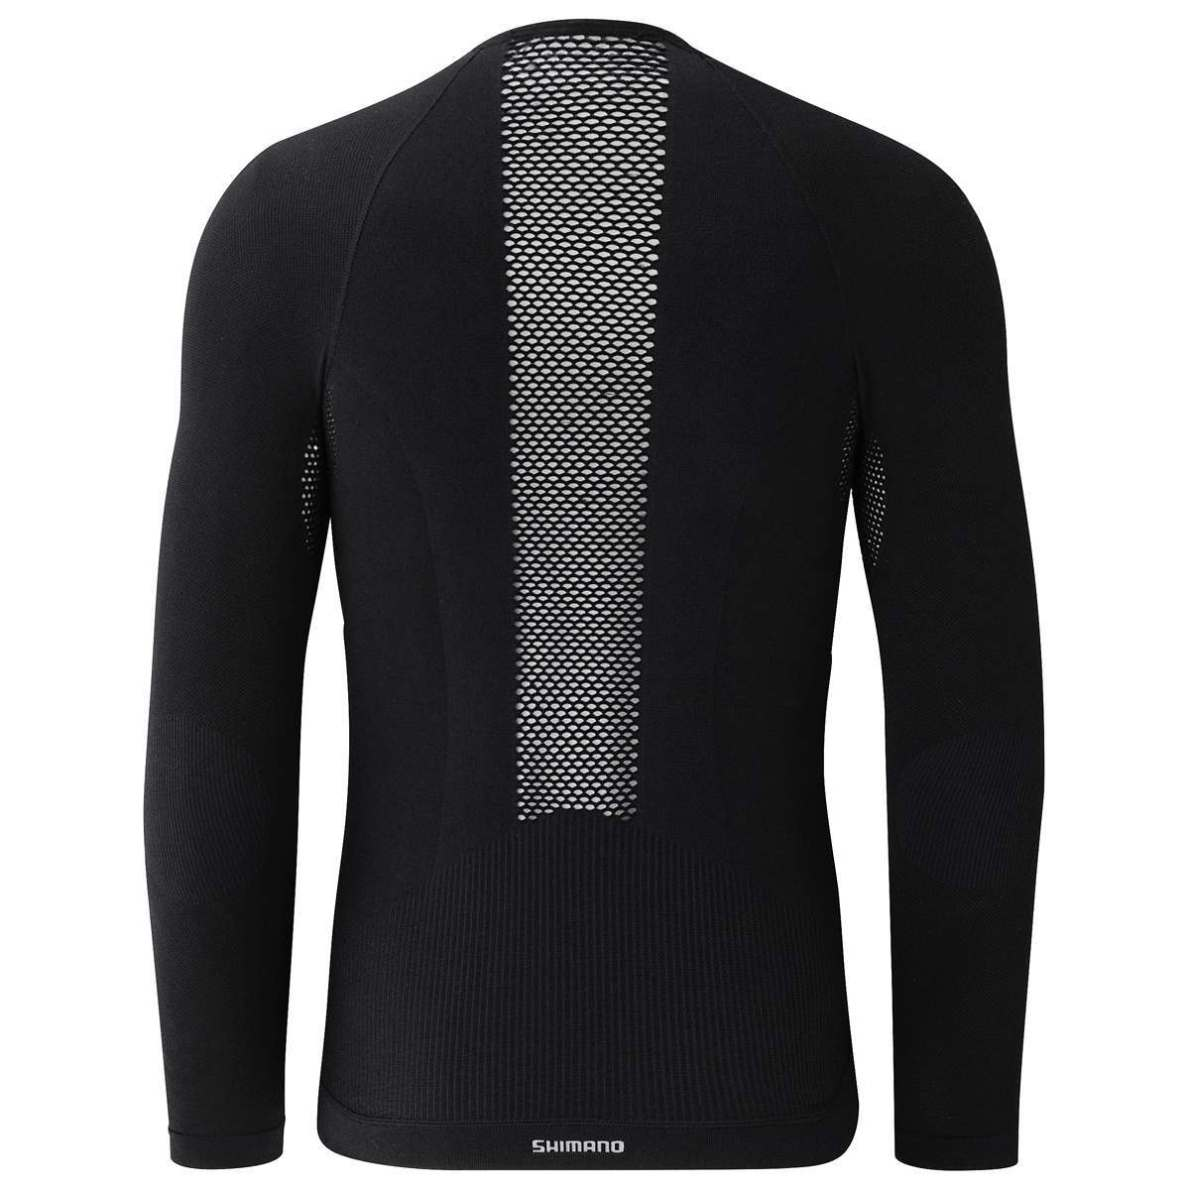 S-PHYRE Winter Baselayer